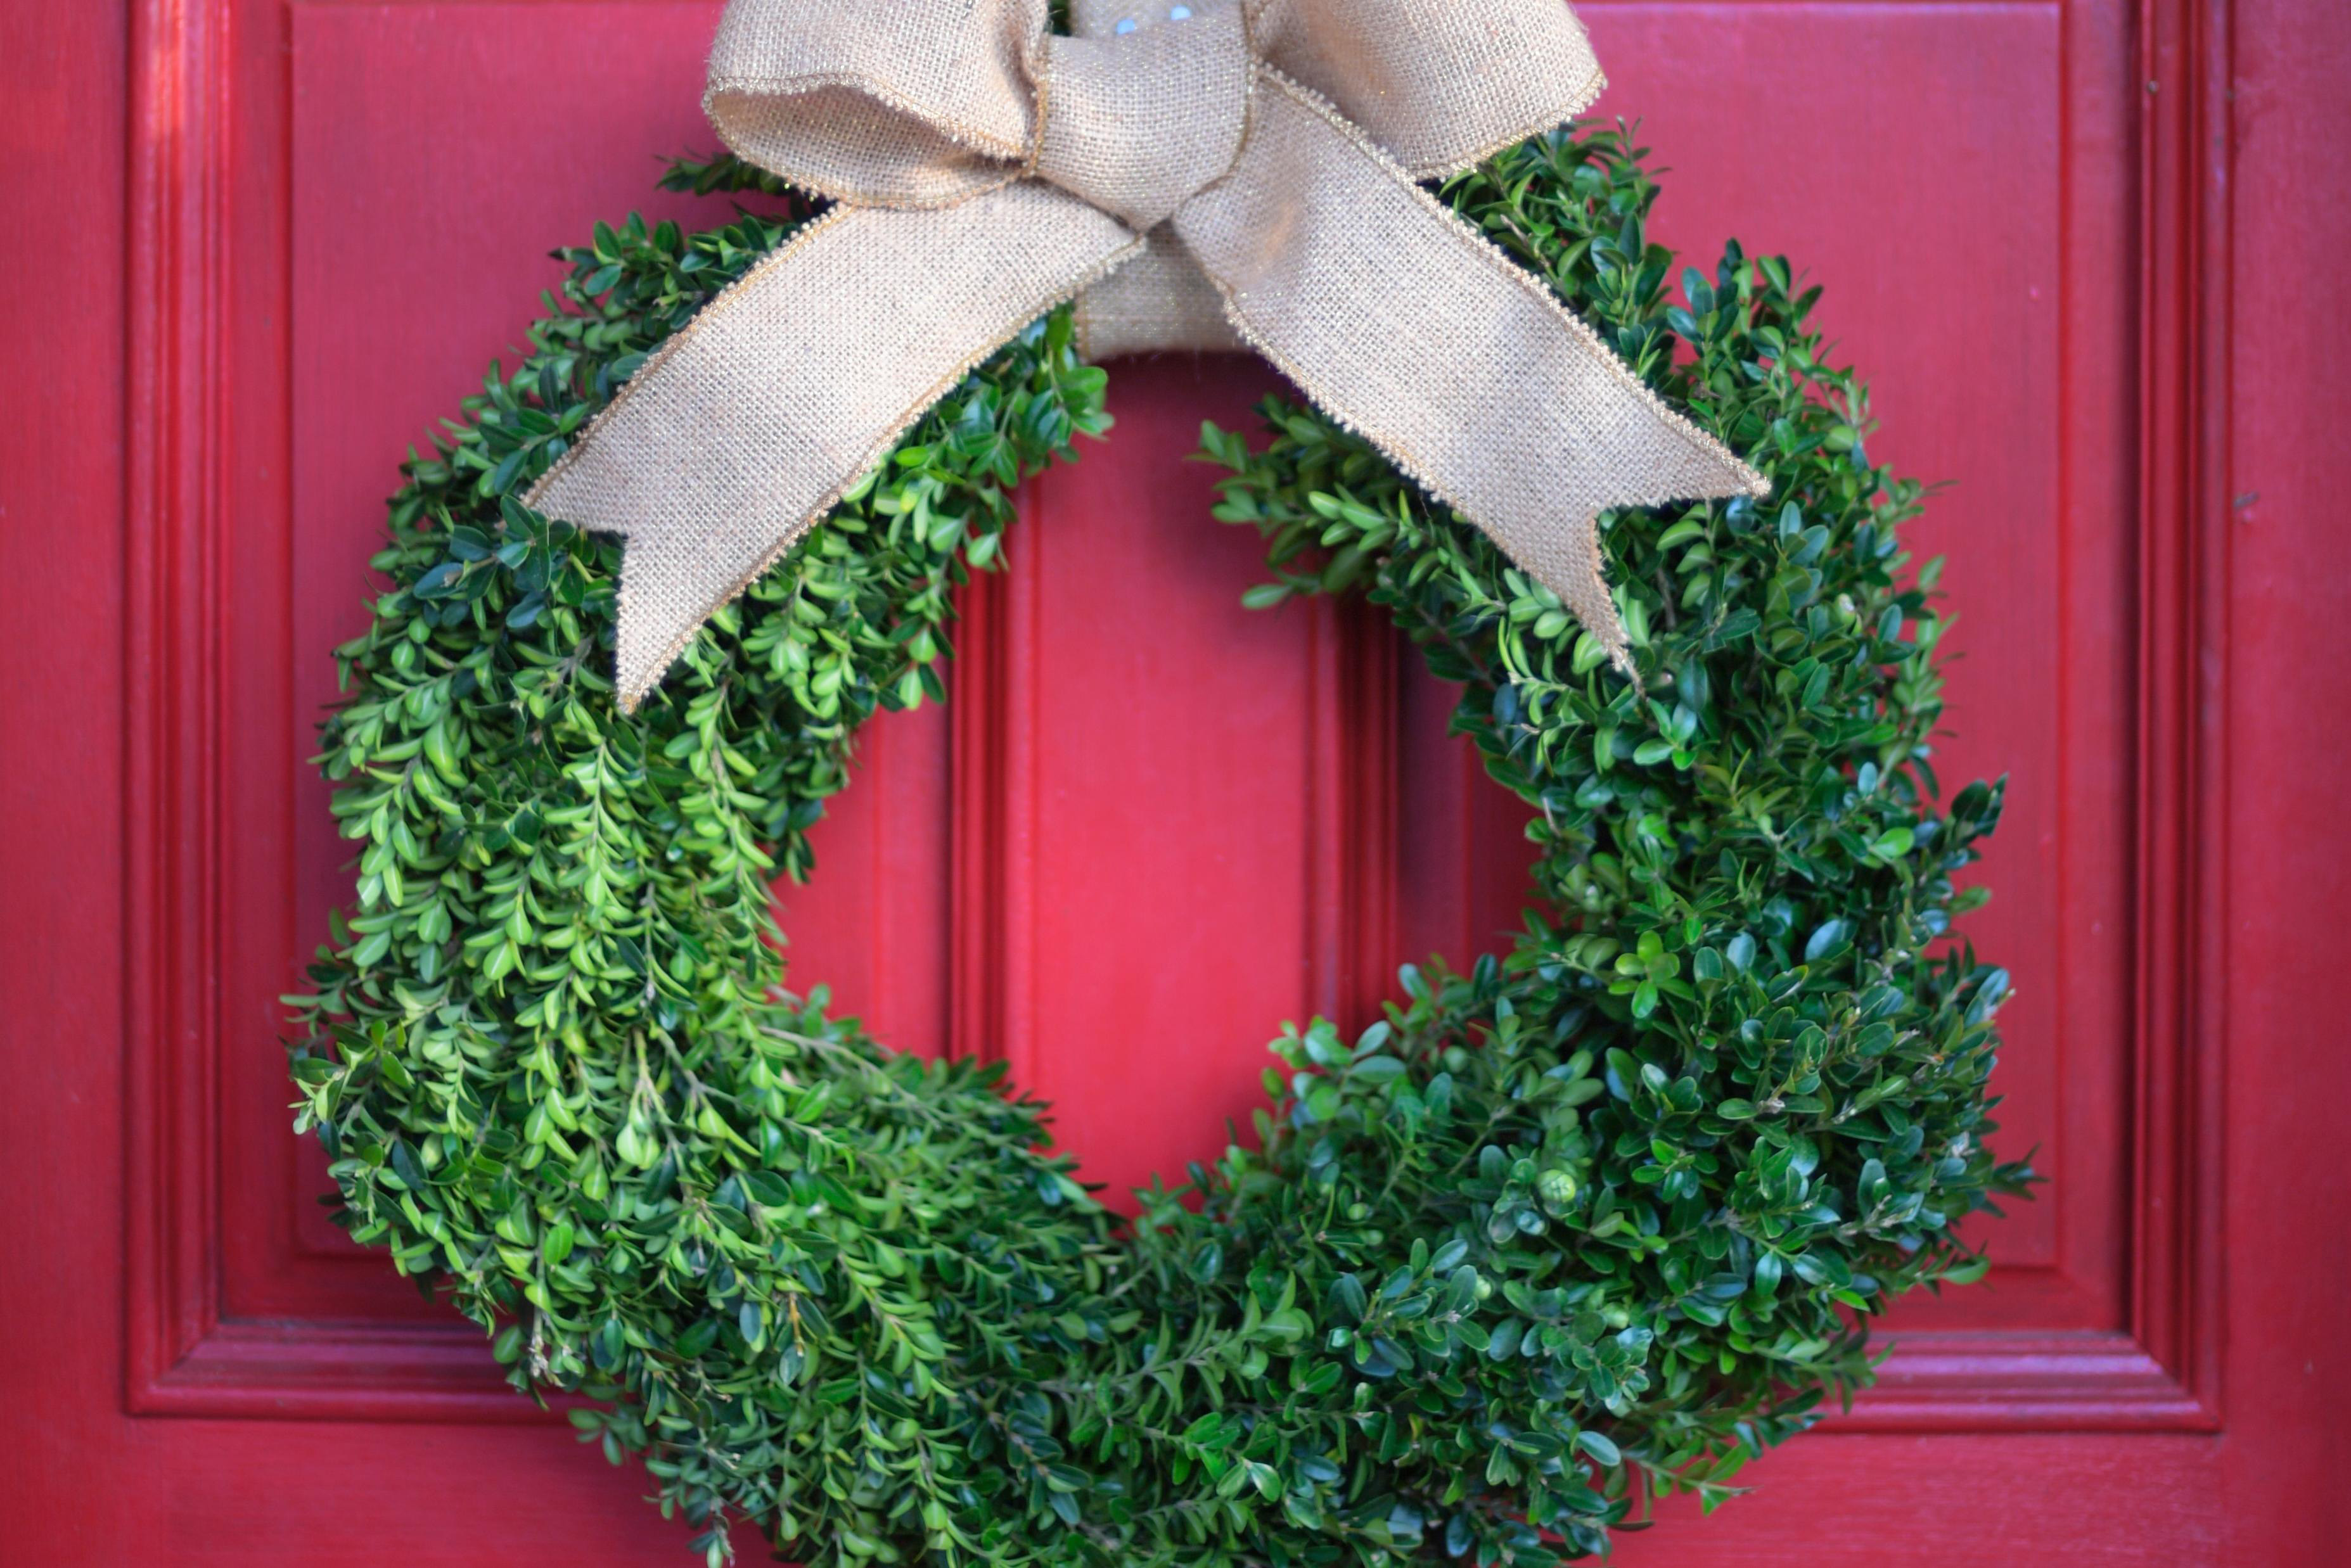 Before decking the halls with boxwood, be aware of this disease